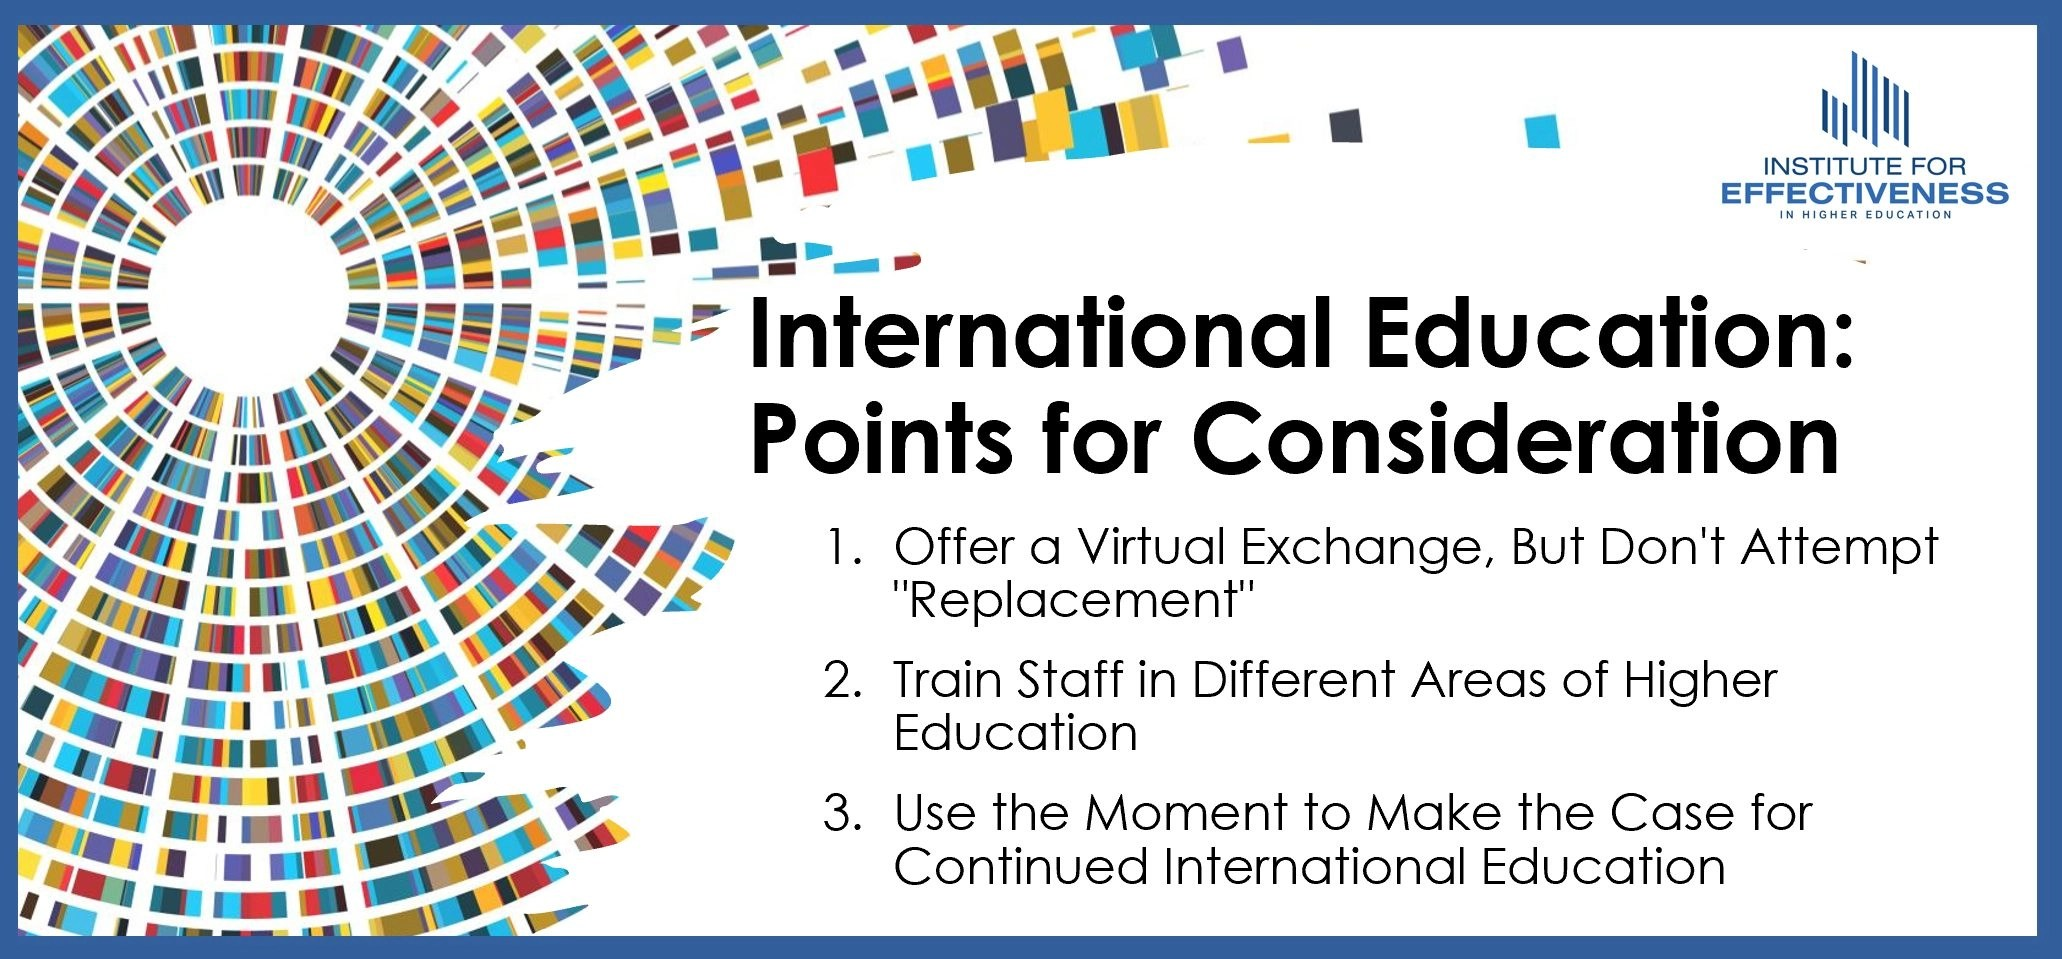 International Education Points for Consideration Infographic